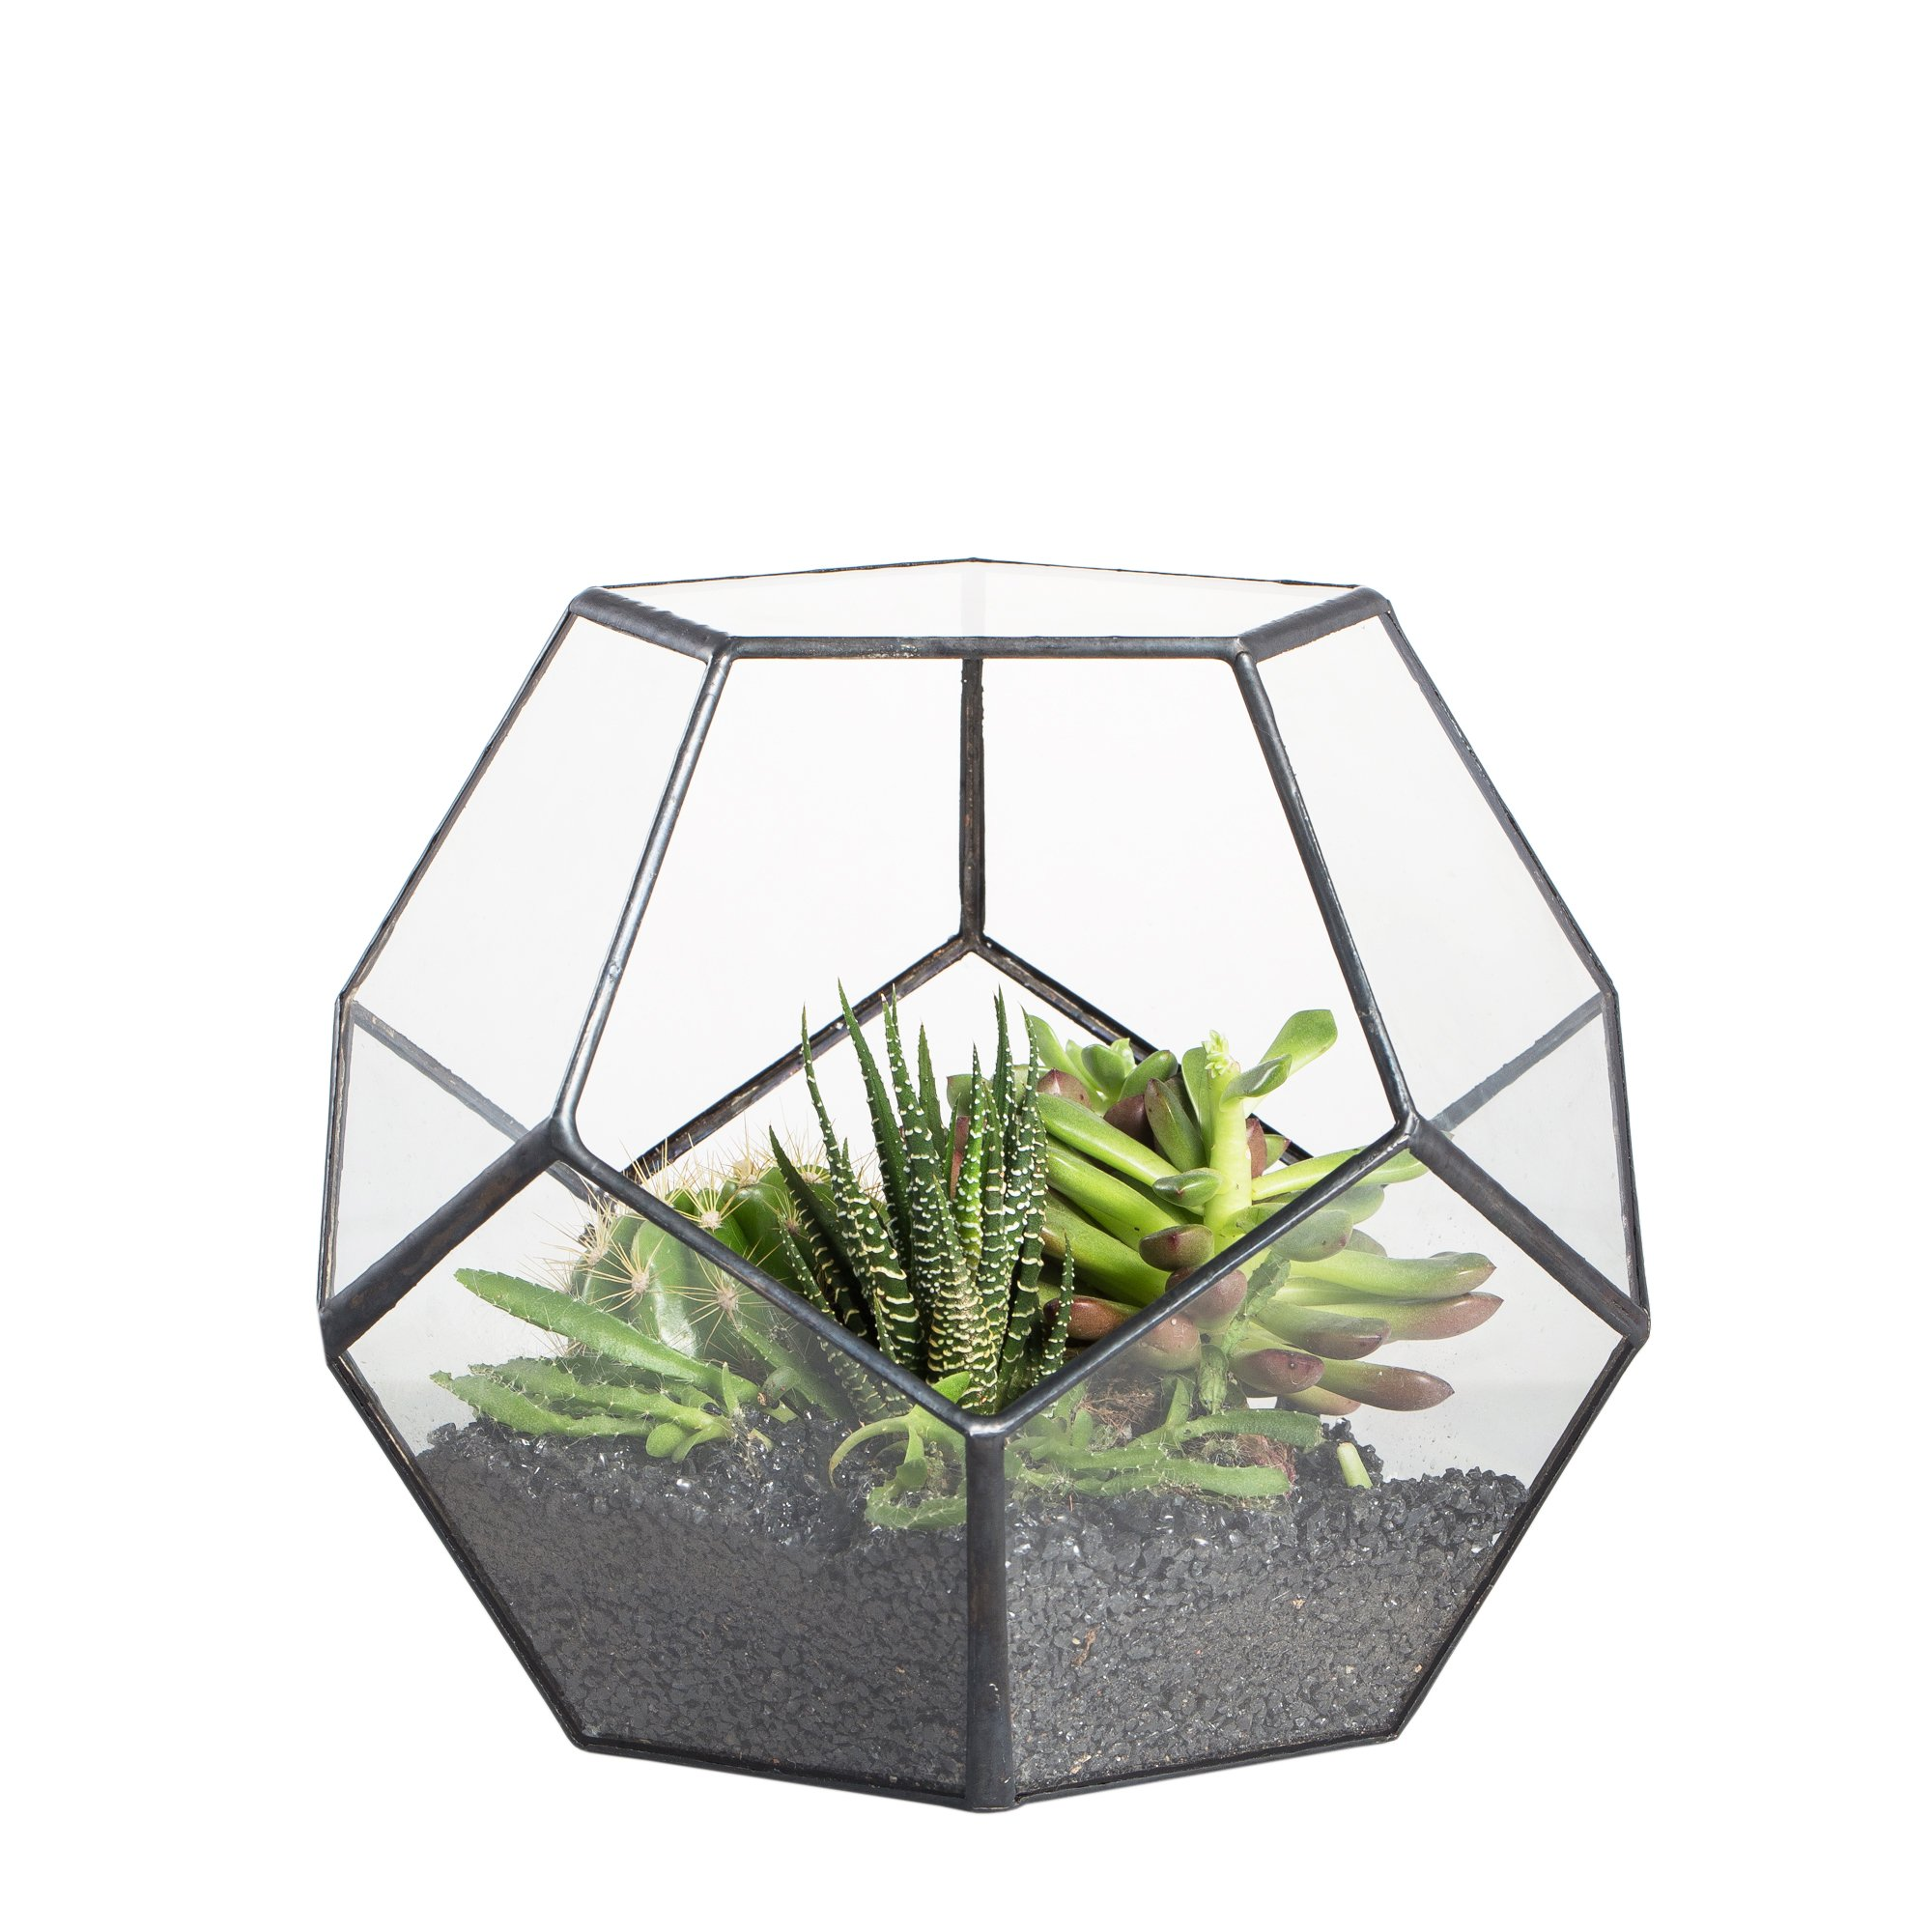 NCYP Modern Tabletop Black Glass Geometric Terrarium Container Window Sill Decor Flower Pot Balcony Planter Diy Display Box for Succulent Fern Moss Air Plants Miniature Fairy Garden Gift (No Plants) by NCYP